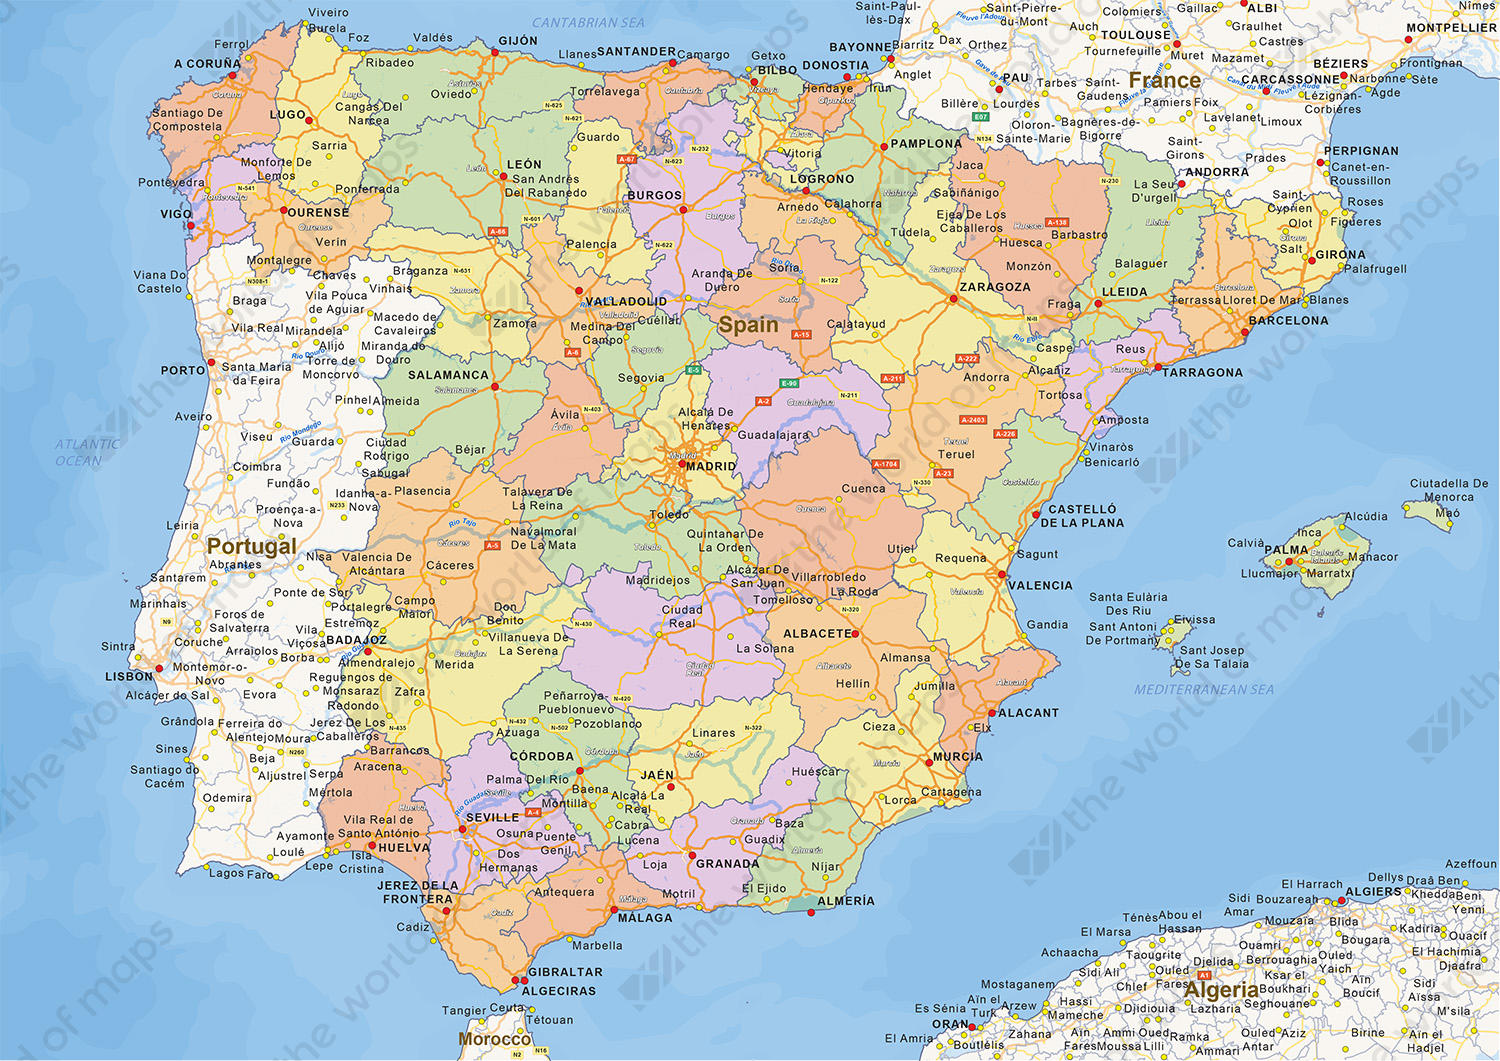 Digital political map of Spain